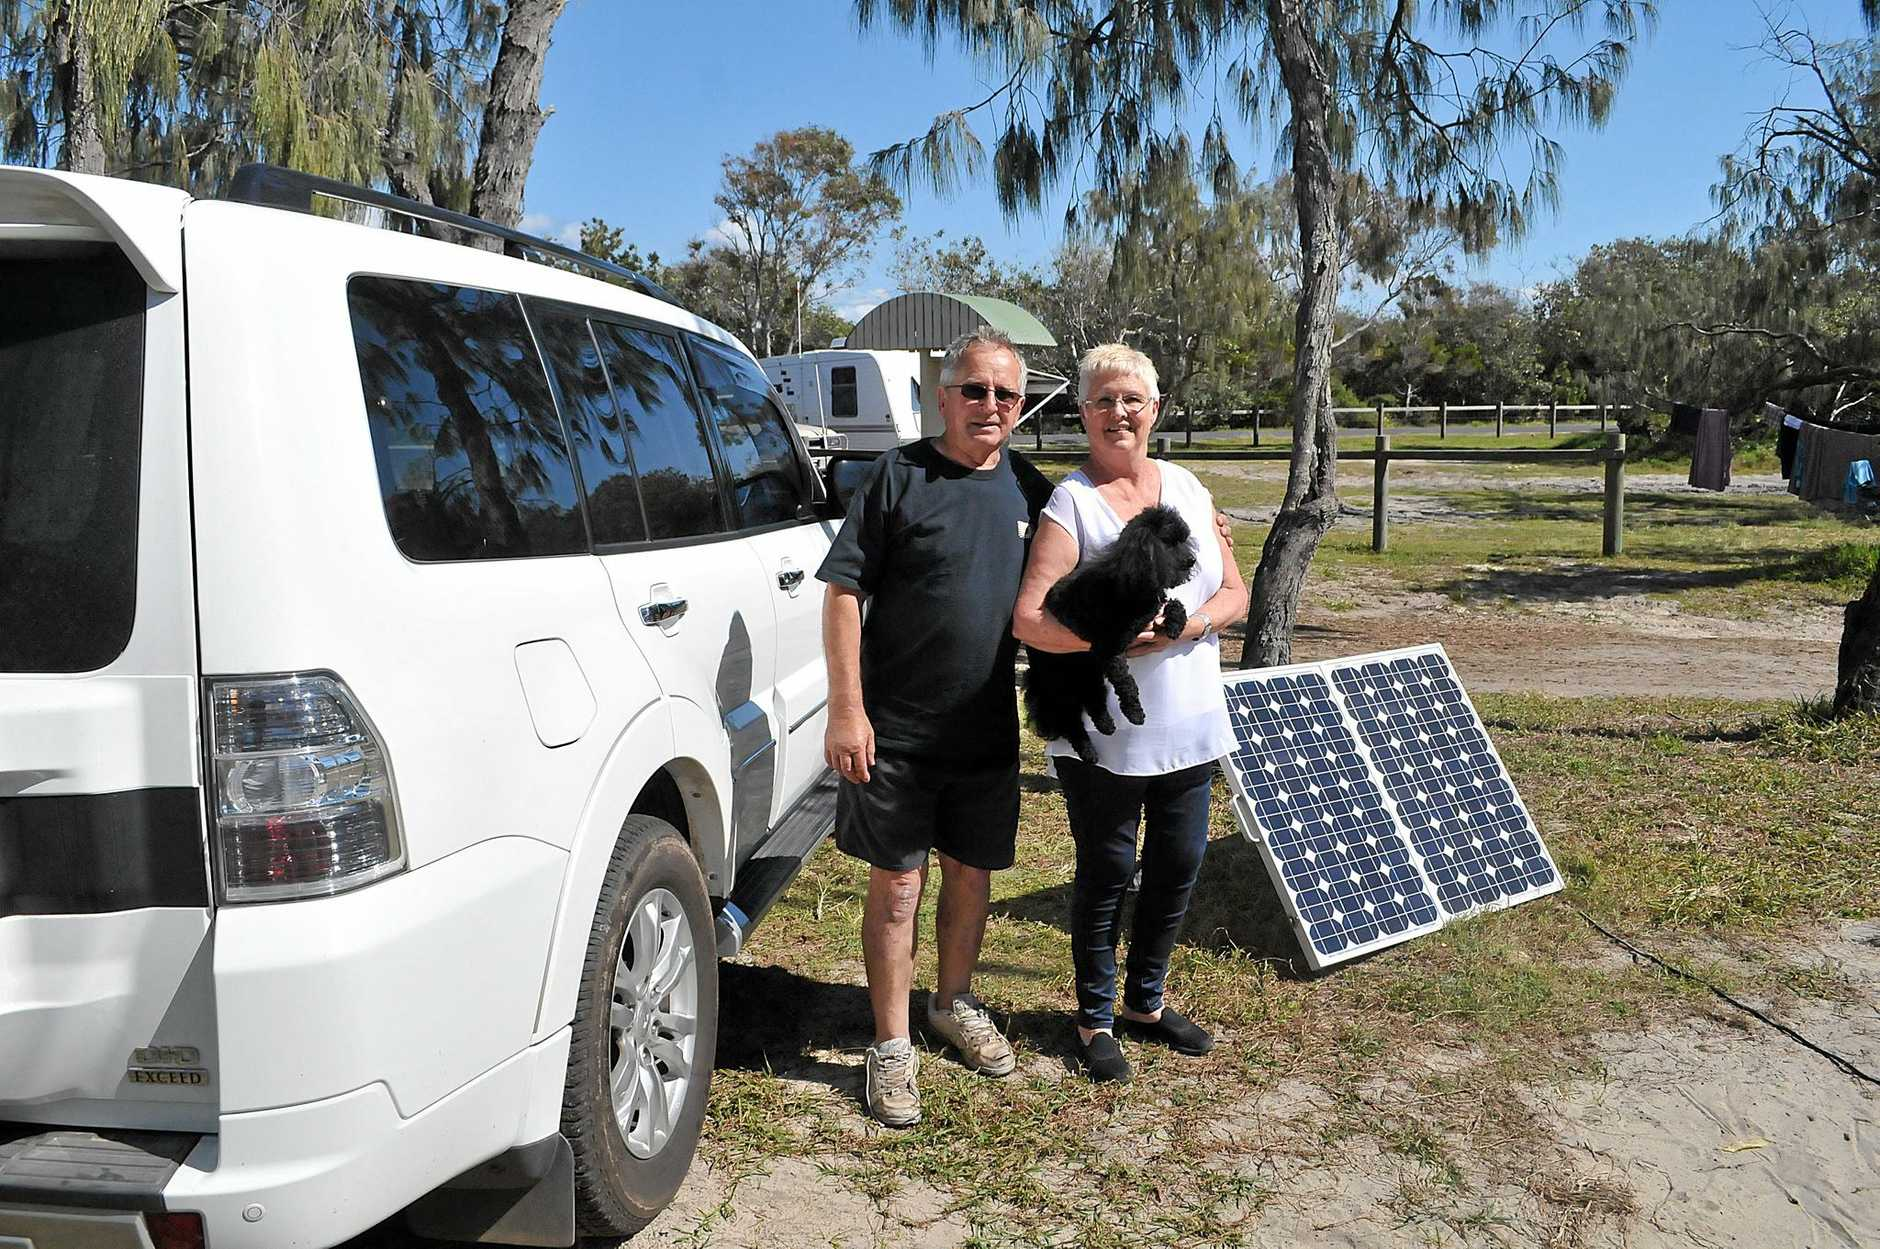 RETURN TO THE SCENE: It takes more than a disaster to keep Jenny and Dieter Gass (and their loyal canine savior Georgie) away from Inskip Point, which they say is the best spot in Australia.